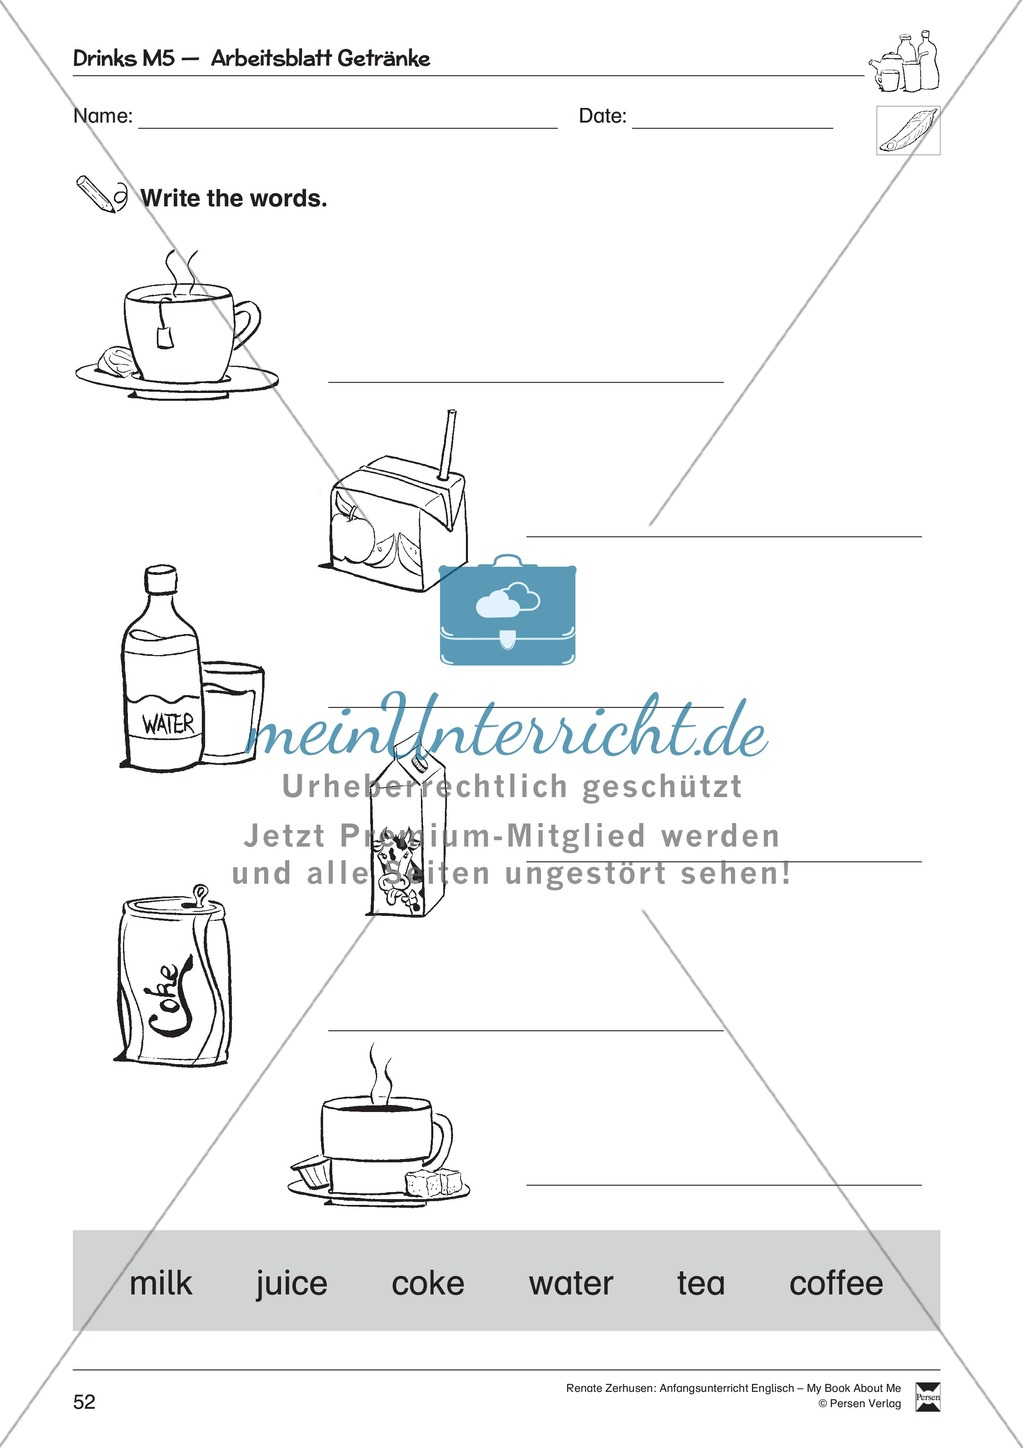 Drinks vocabulary: Worksheets on drinks (Binnendifferenziert) Preview 8